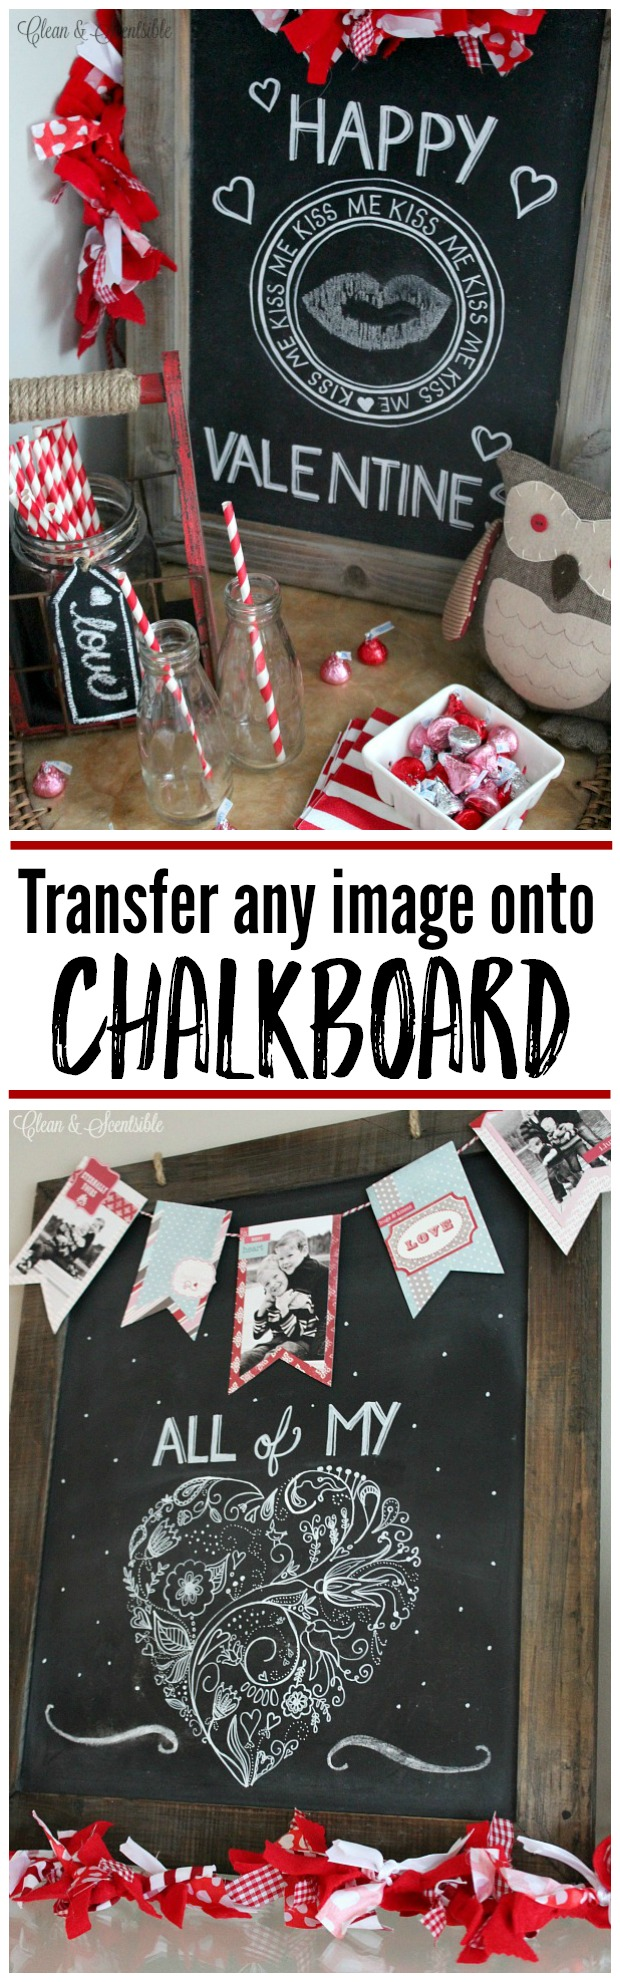 How-to-transfer-any-image-onto-chalkboard.jpg